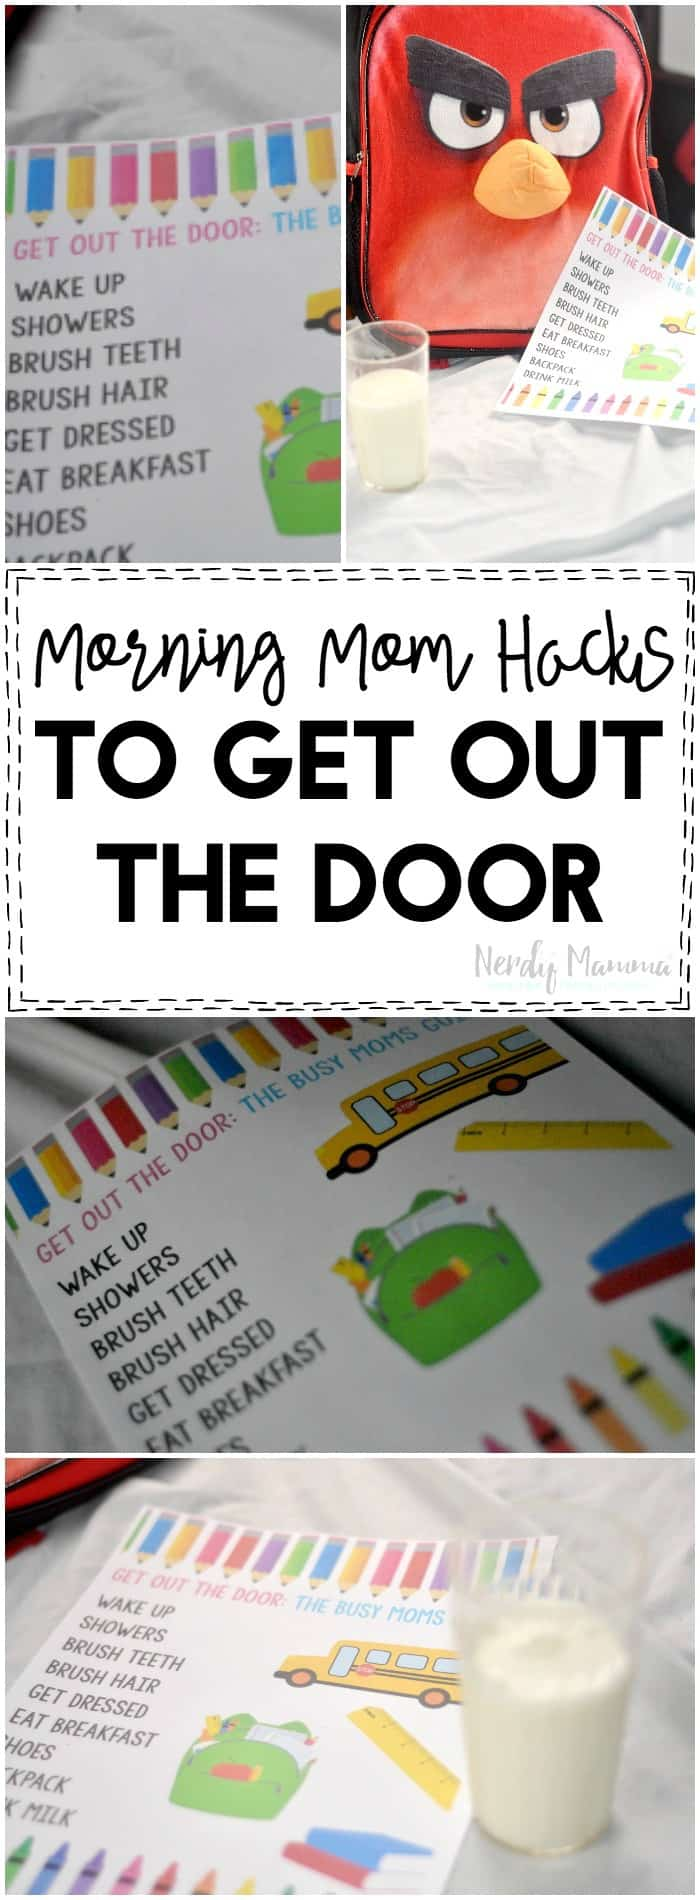 Getting out of the door in the morning sucks. I NEED these morning hacks!!